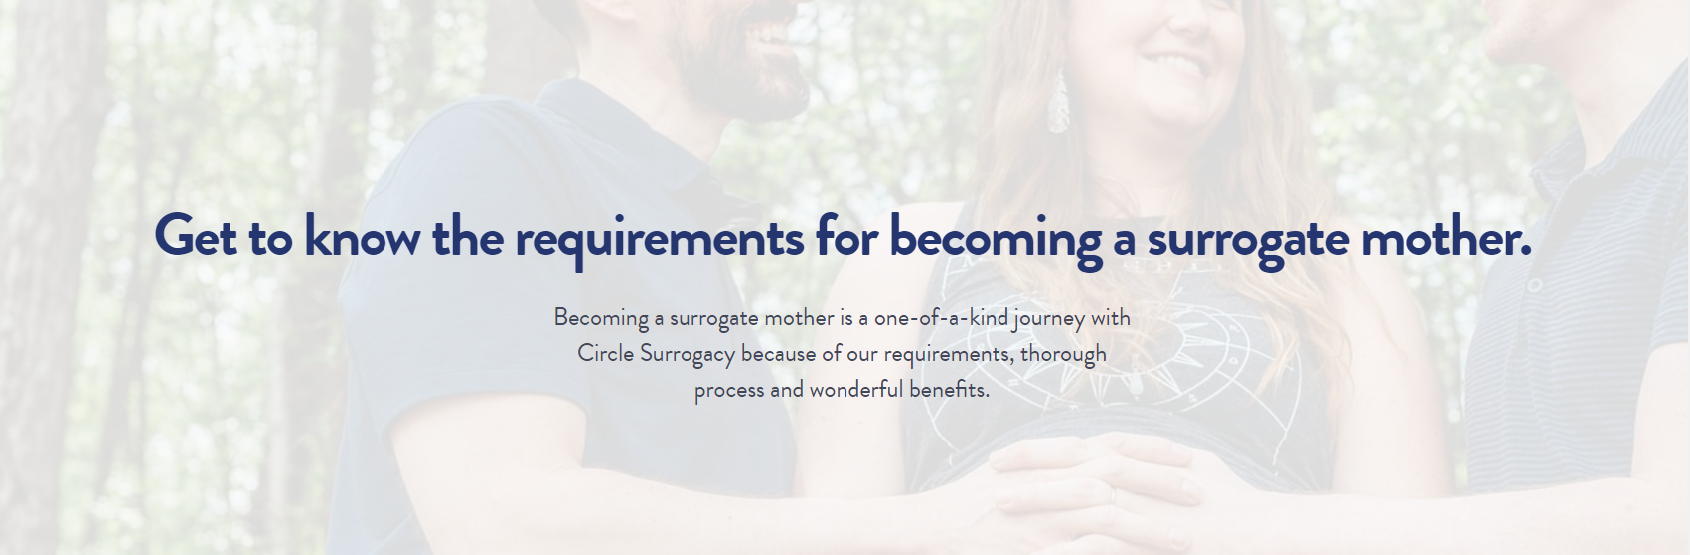 Requirements for becoming a surrogate mother